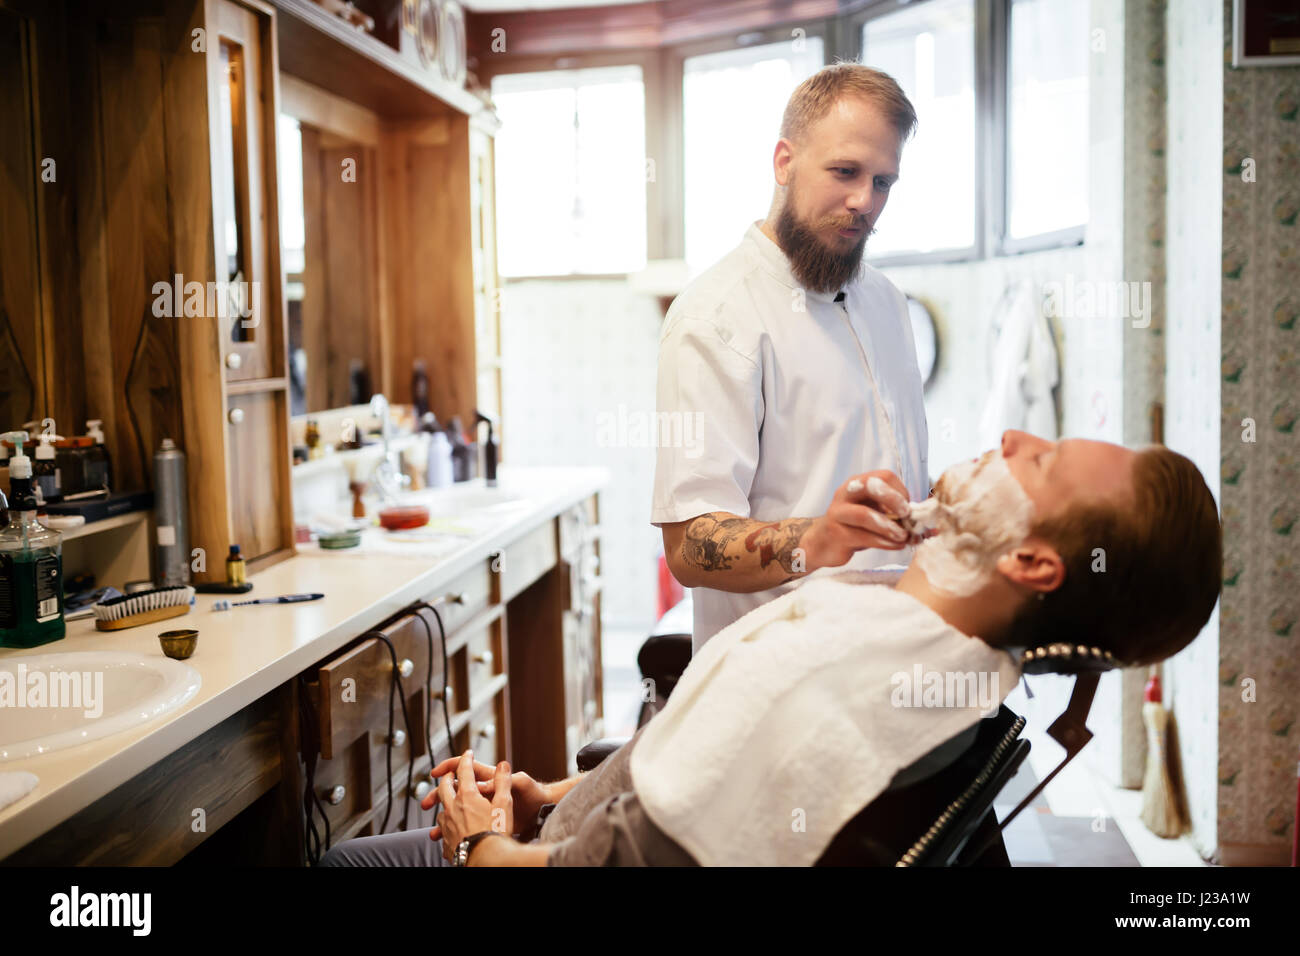 barber shaving grooming men in stock photos barber shaving grooming men in stock images alamy. Black Bedroom Furniture Sets. Home Design Ideas